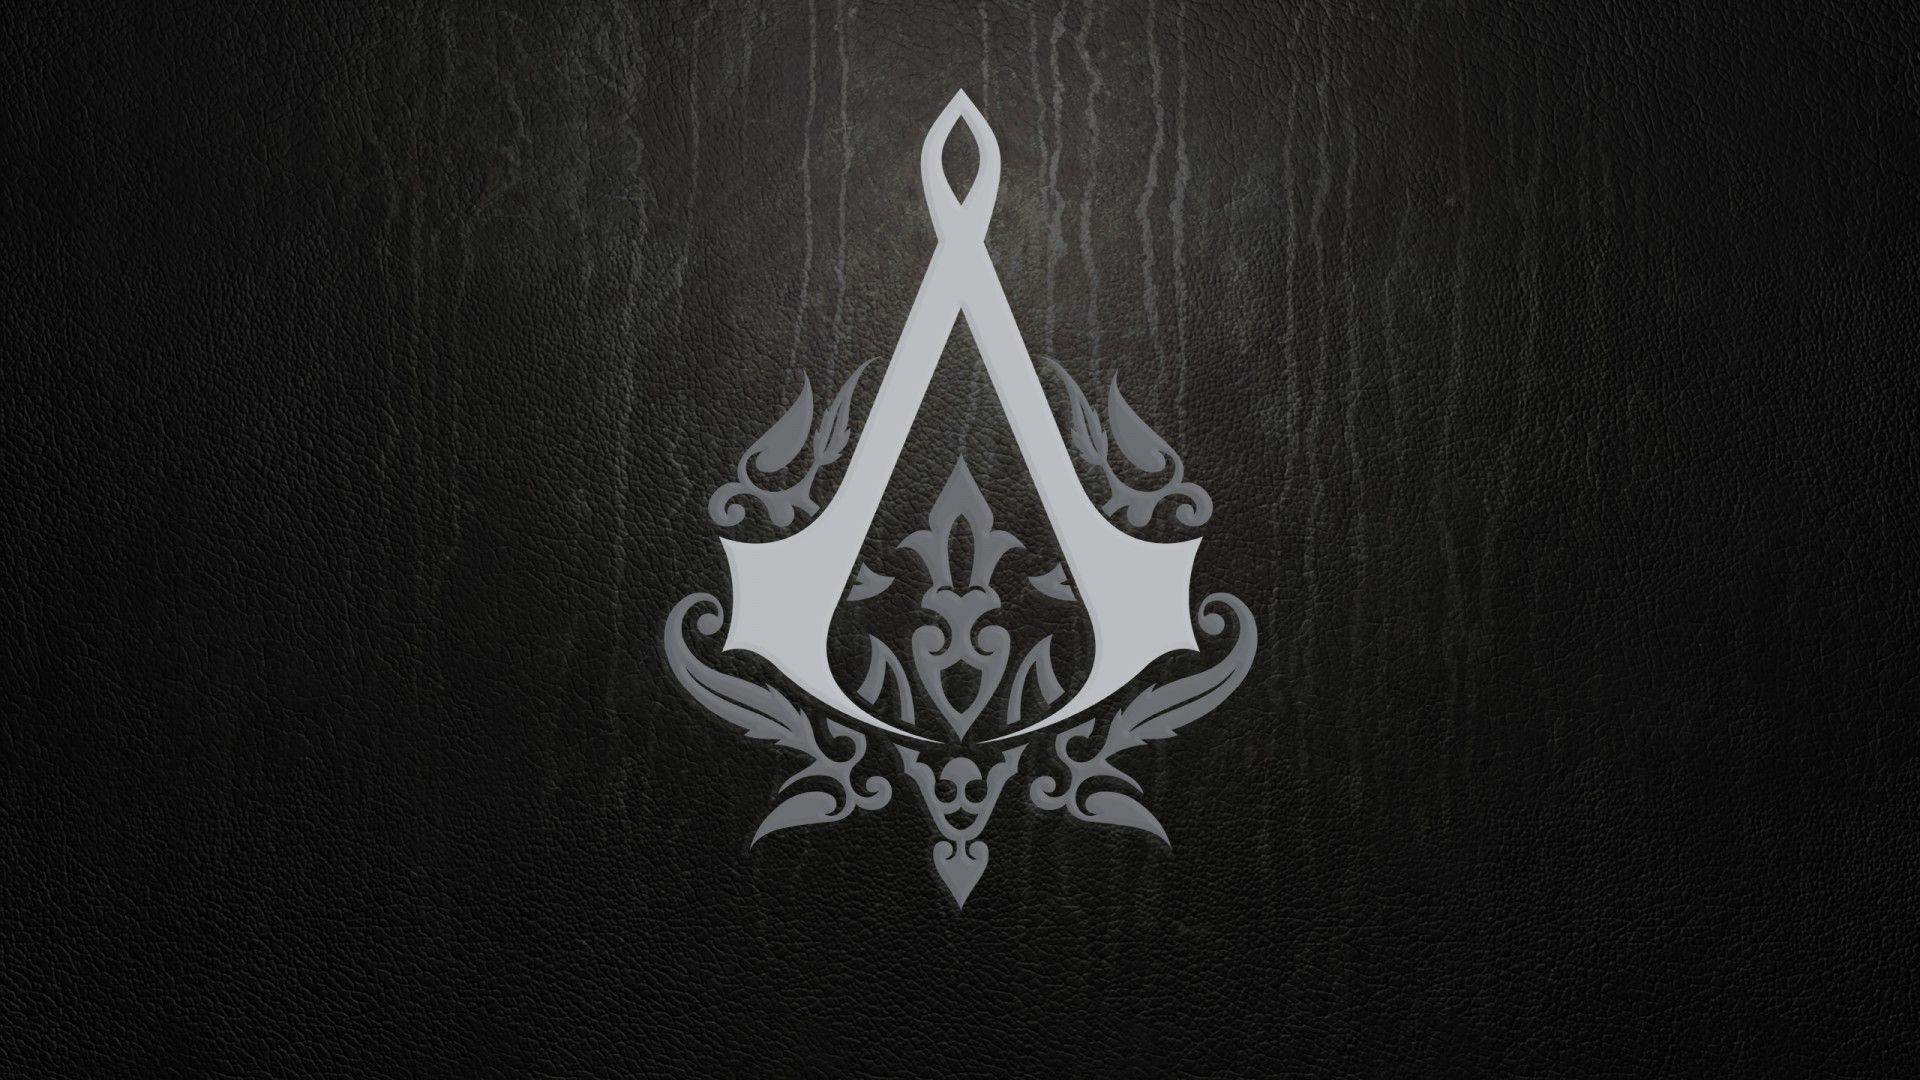 Minimalism, Assassins Creed, Assassins Creed Revelations Wallpaper